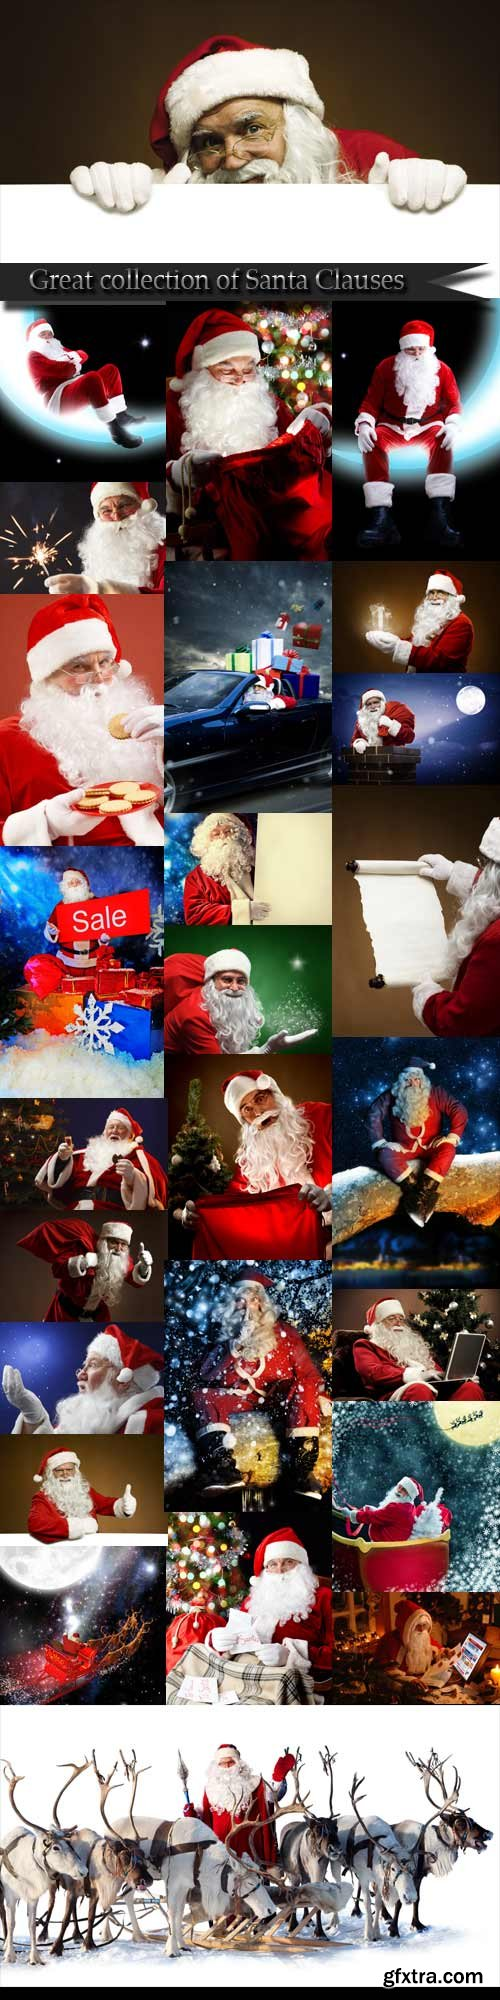 Great collection of Santa Clauses